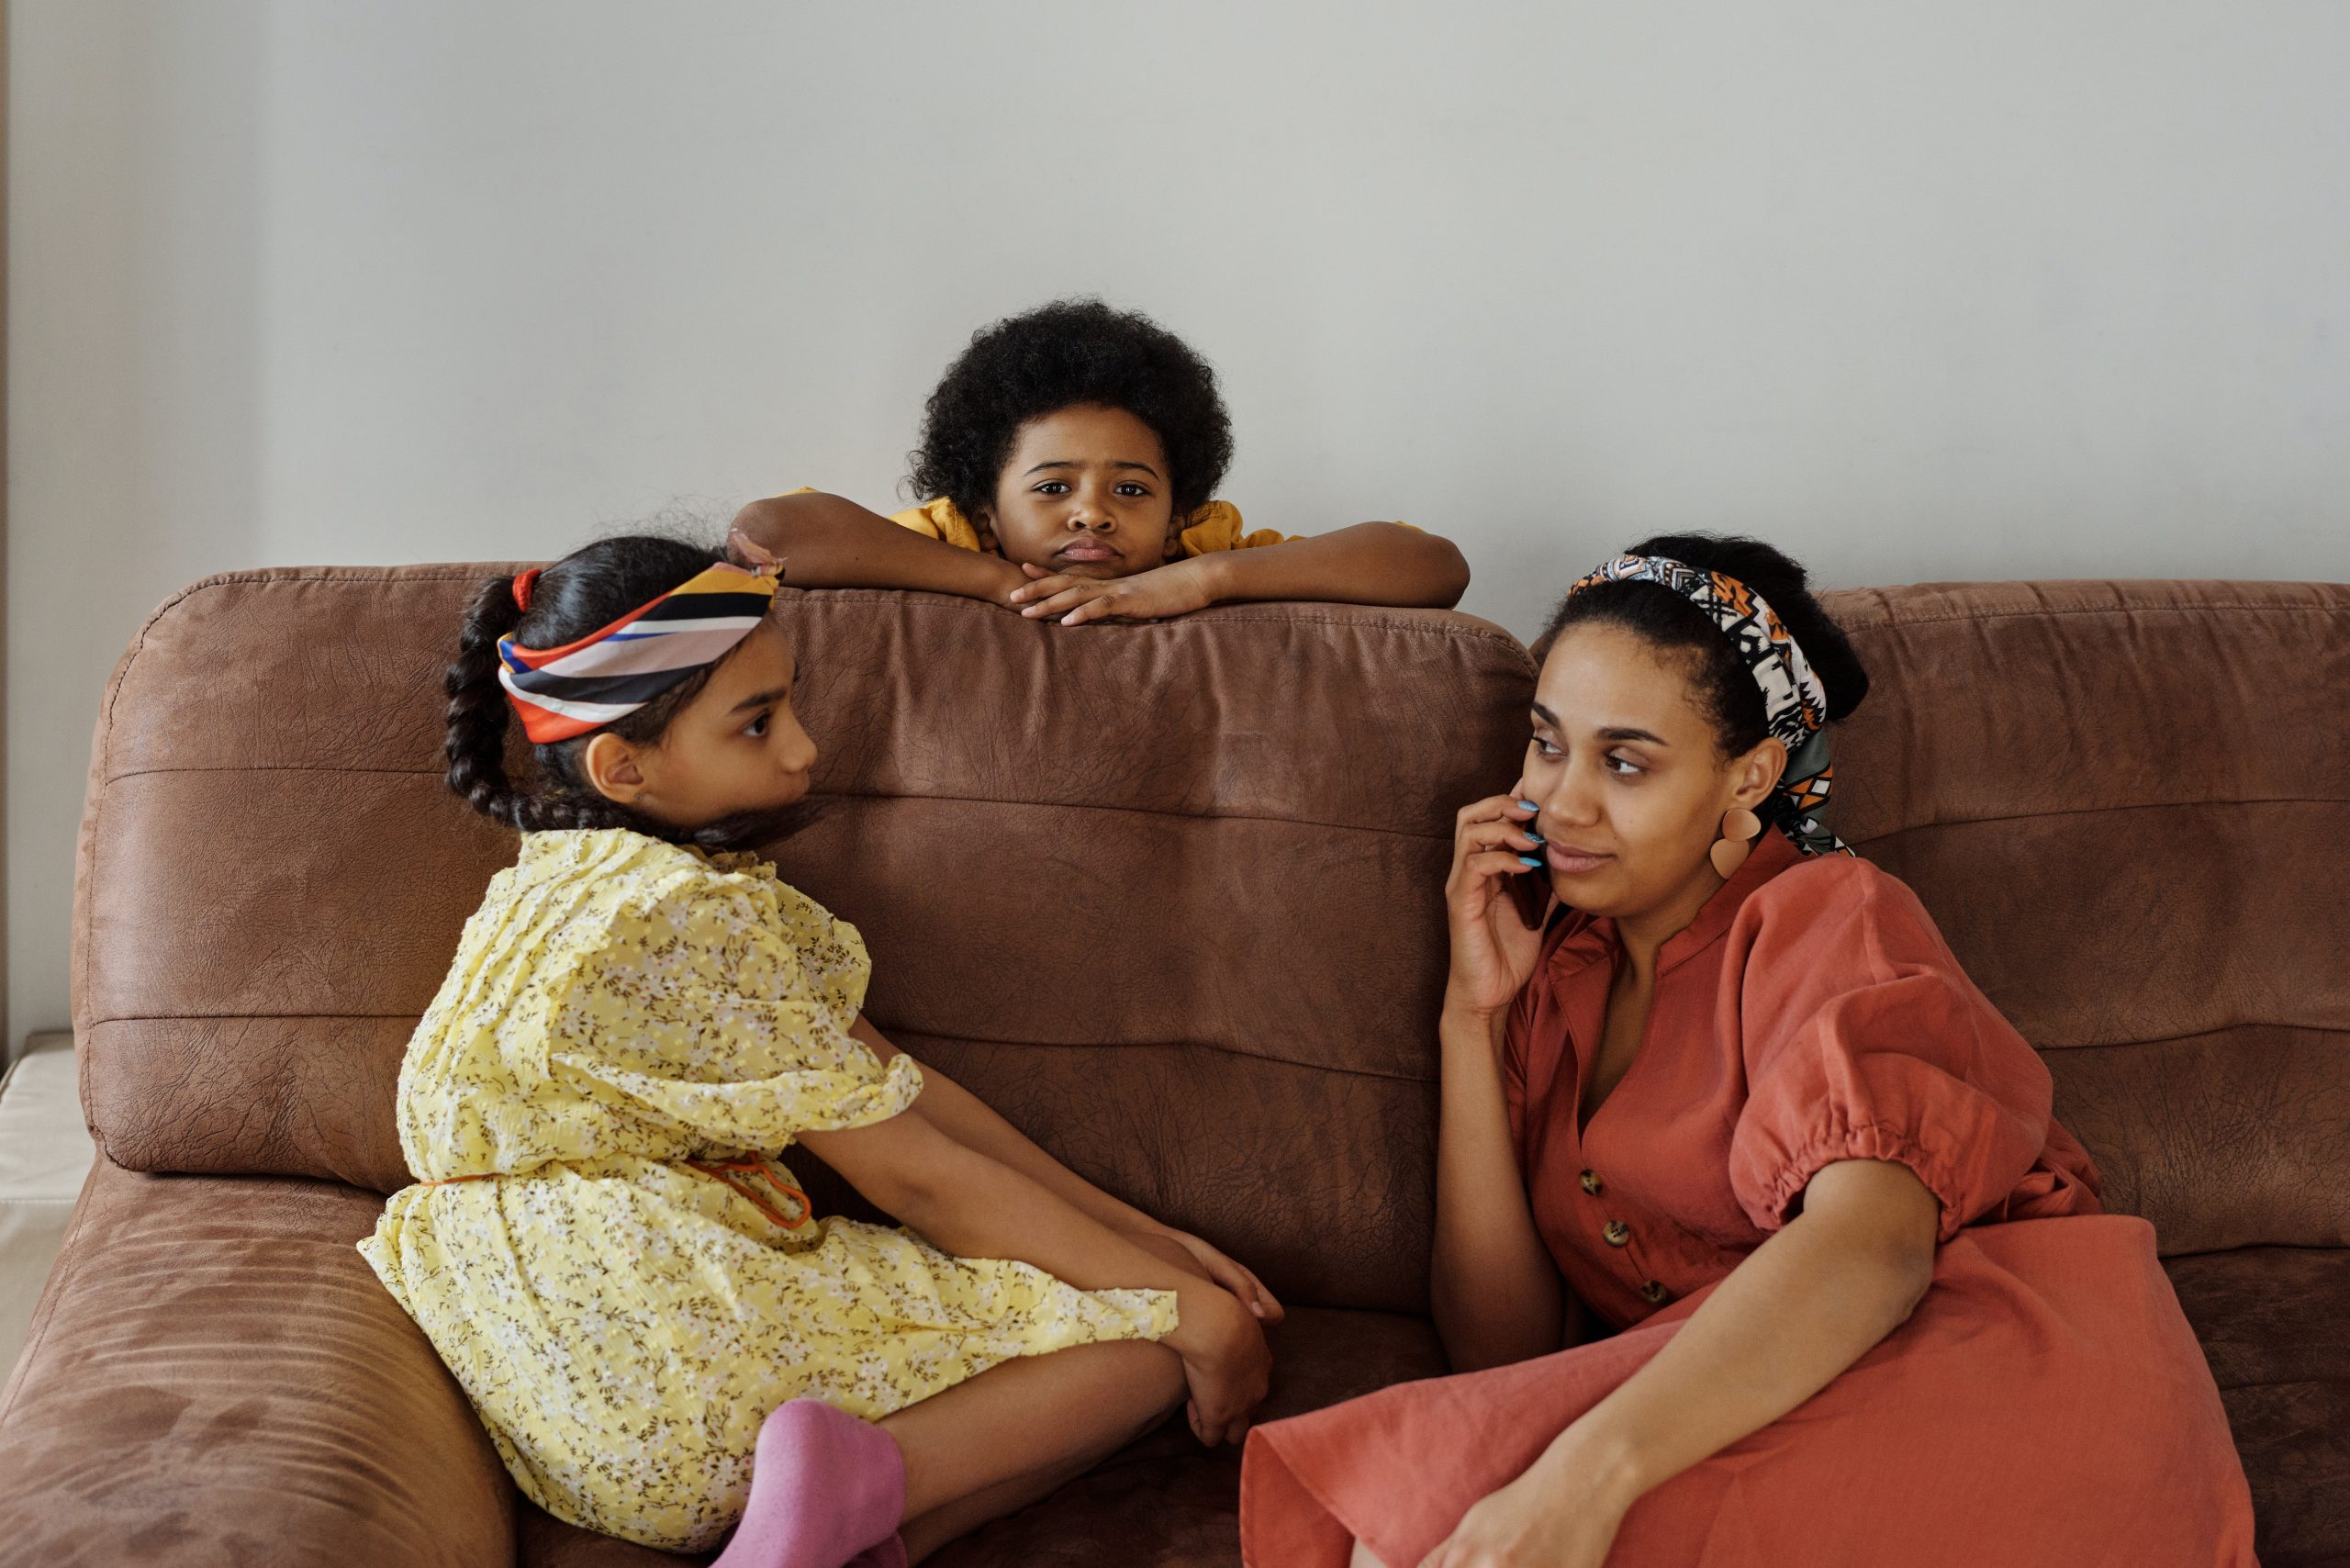 FIVE SURE WAYS TO HELP A FORGETFUL CHILD